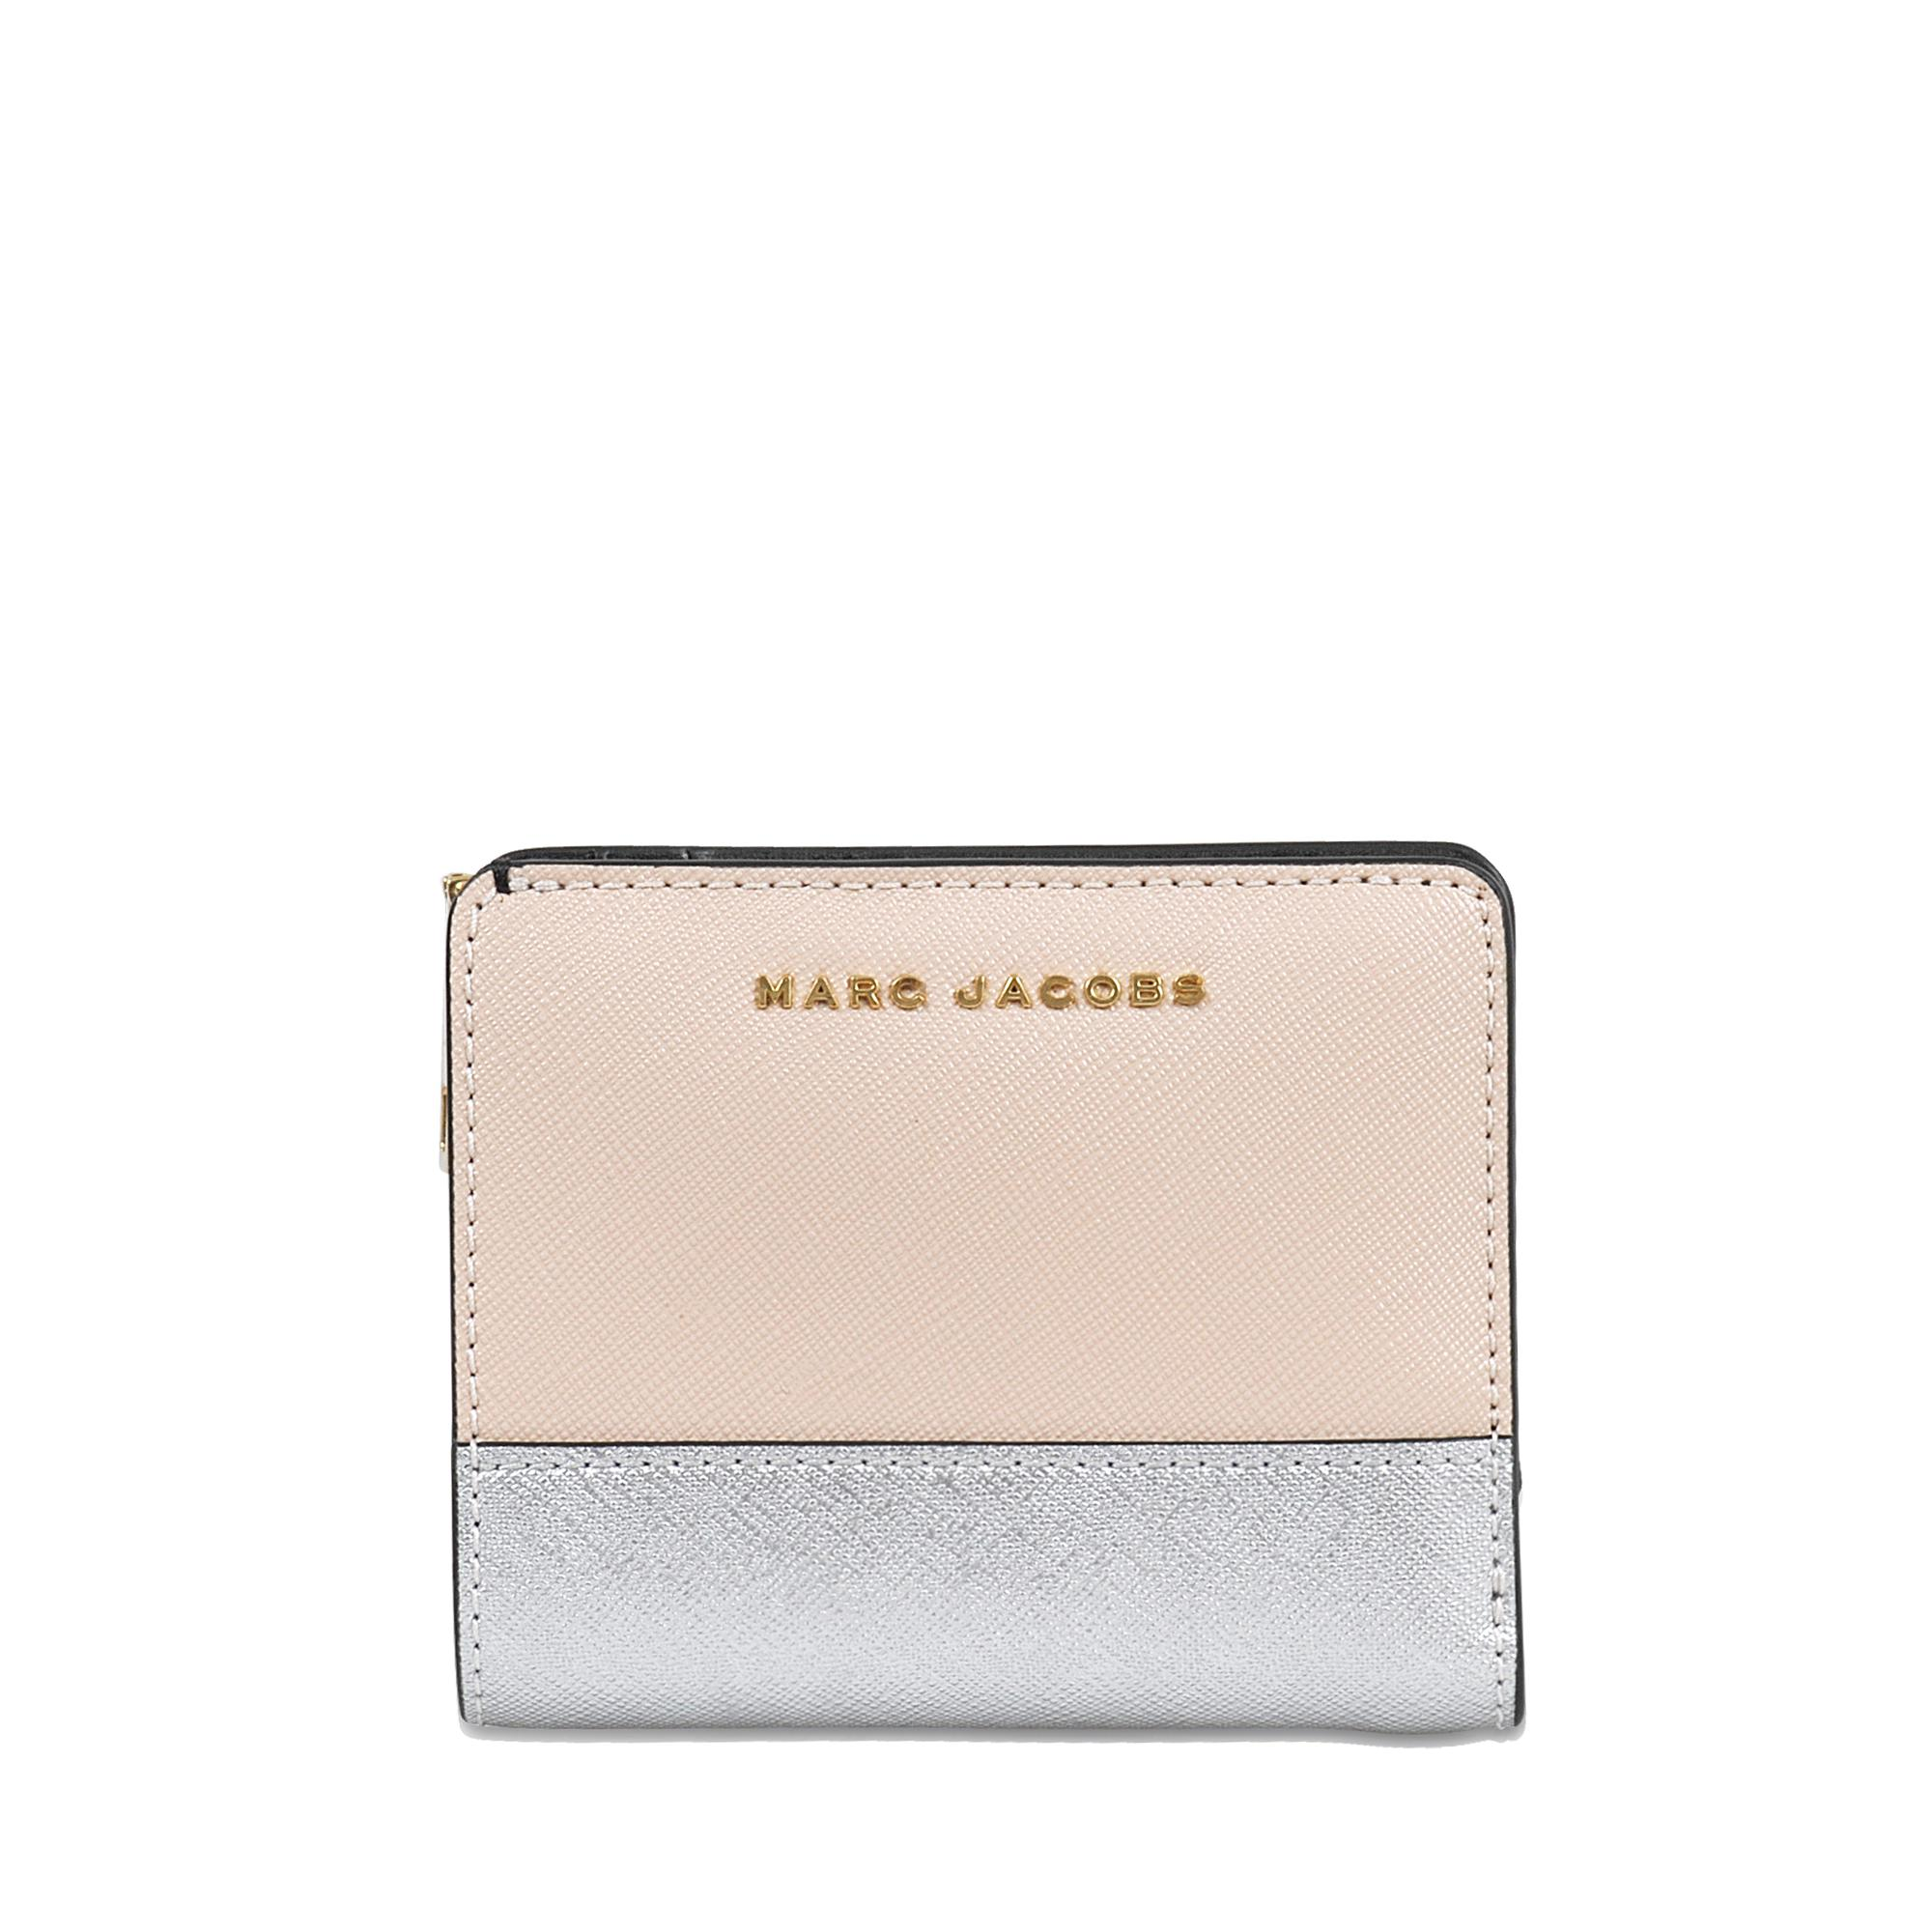 81c1db02a Marc Jacobs Color Blocked Mini Compact Wallet - Lyst